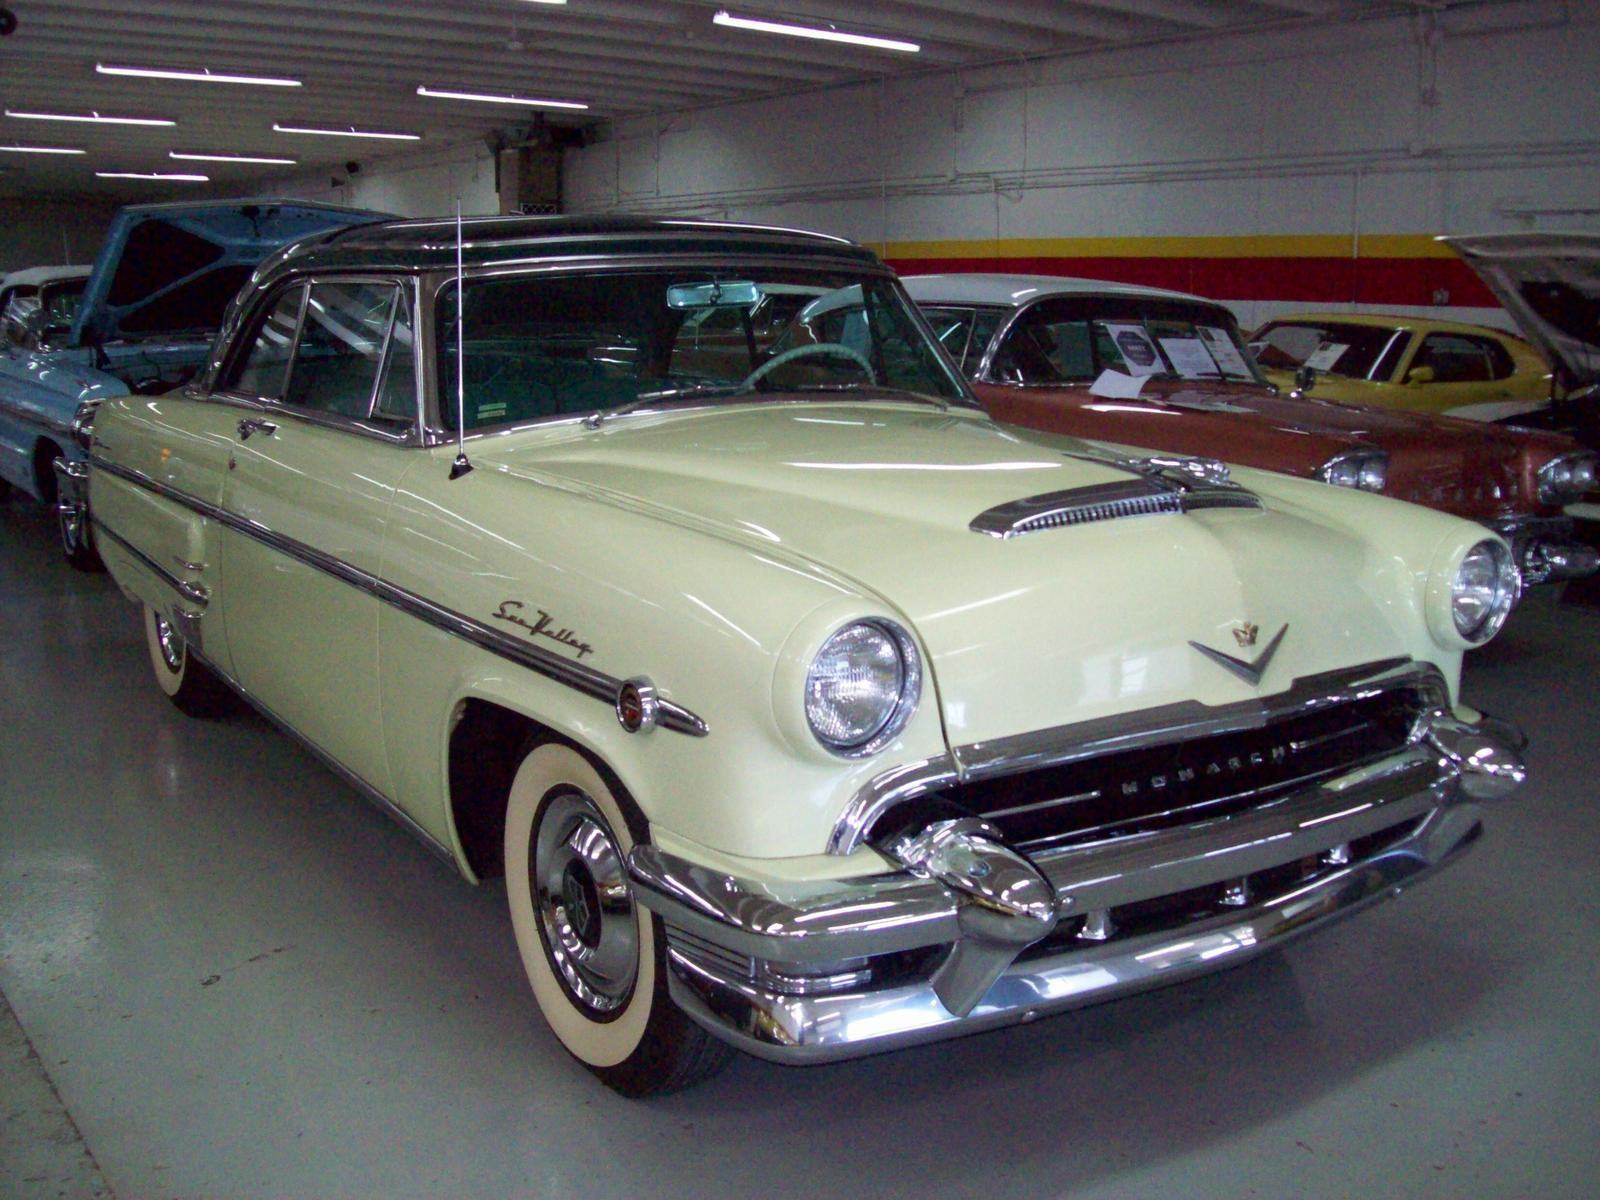 Used 1954 Mercury Monarch Lucerne SunValley for sale in Saint ...